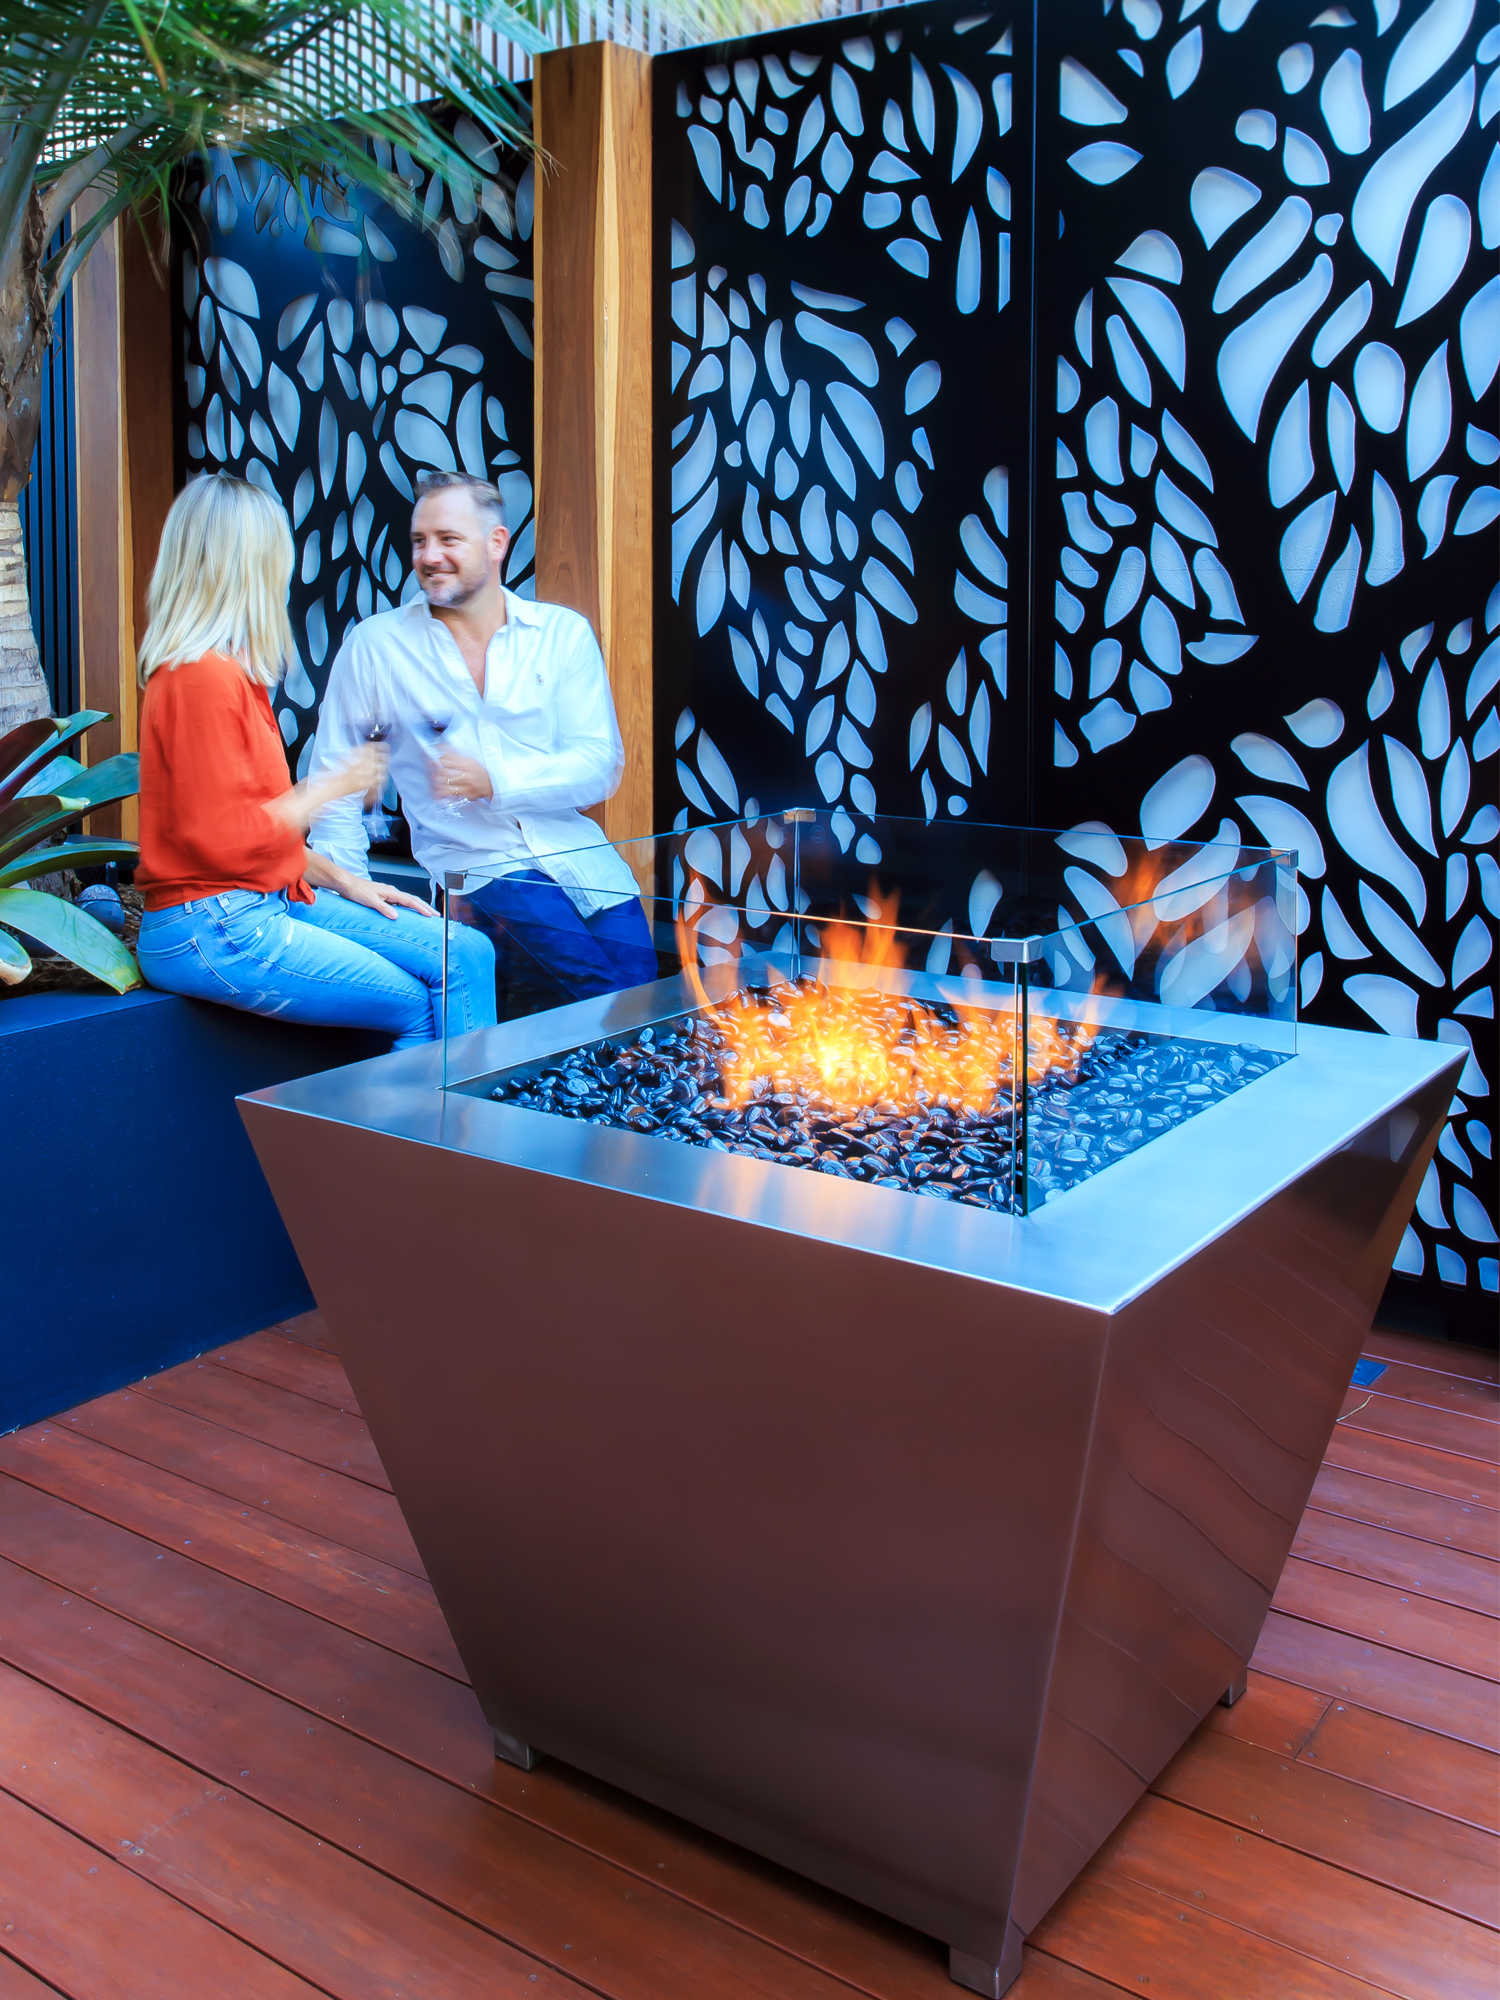 Warm up this winter with a gas fire pit